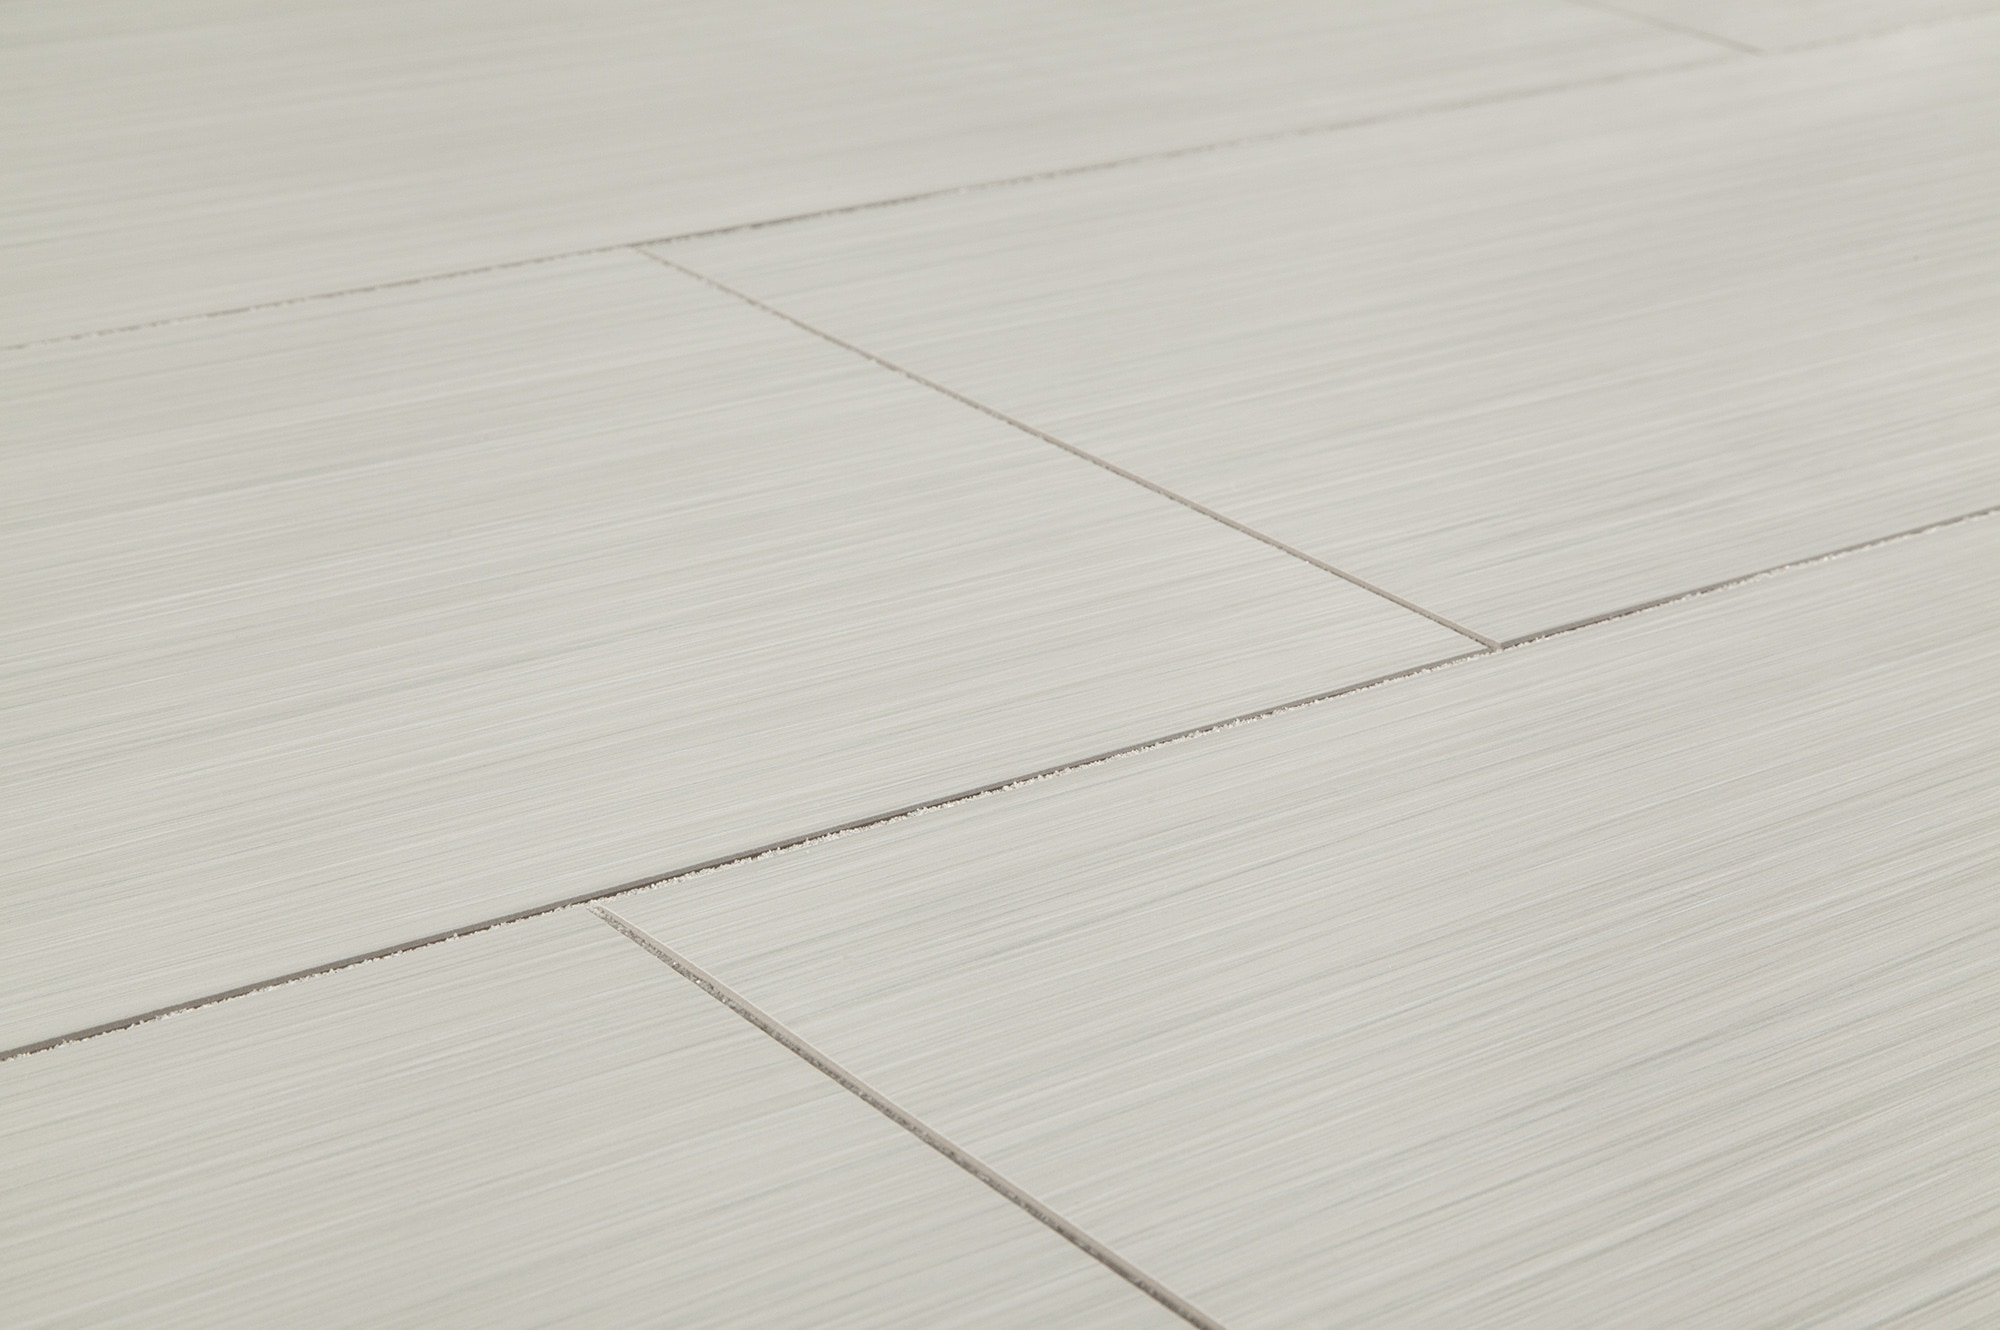 white porcelain tile floor. White Porcelain Tile Floor V